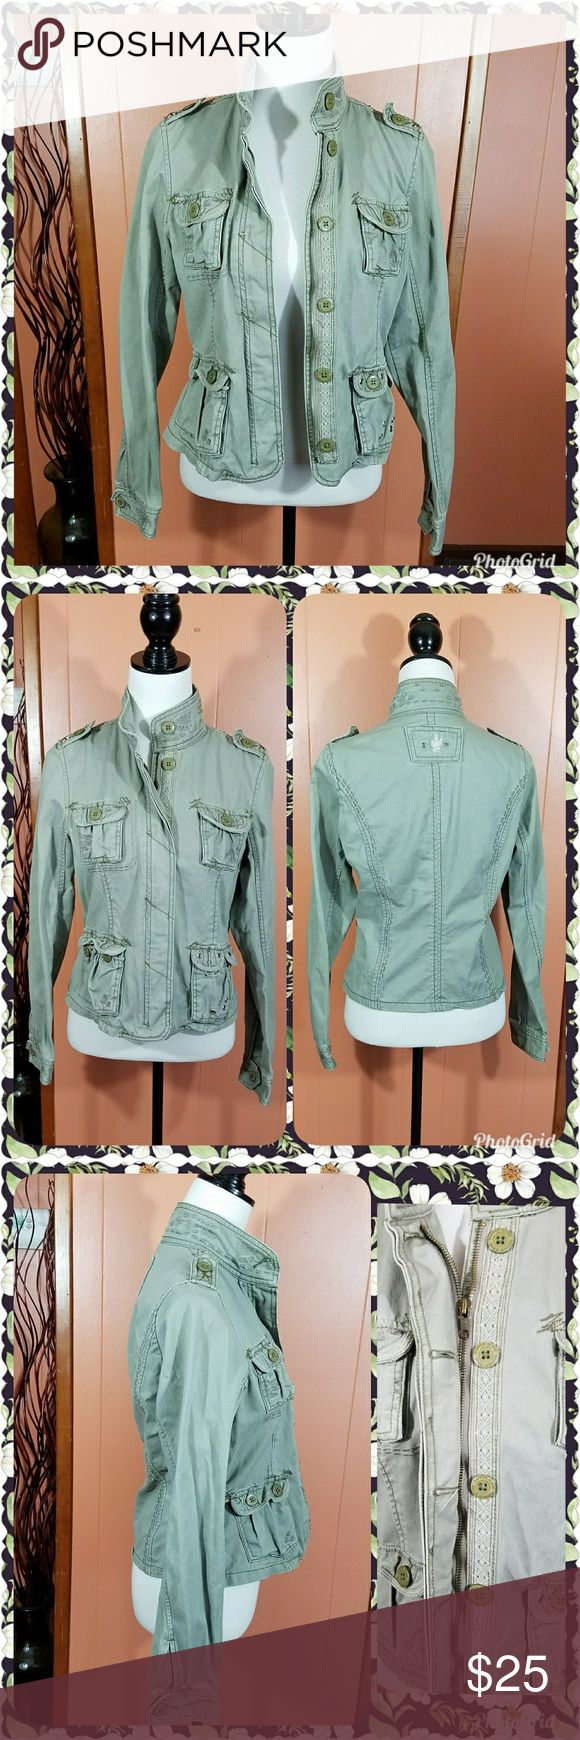 Green utility jacket. This fitted jacket is super cute. It is a beautiful sage green color. It features many details which adds to its charm. There are several pockets on the front. Lace detail on the zipper and button closure. There is gold trim on the inside. And stitching detail on several parts of the jacket. 100% cotton. Excellent used condition. Please feel free to ask questions about size or fit before purchasing. Rapper Jeans Jackets & Coats Utility Jackets